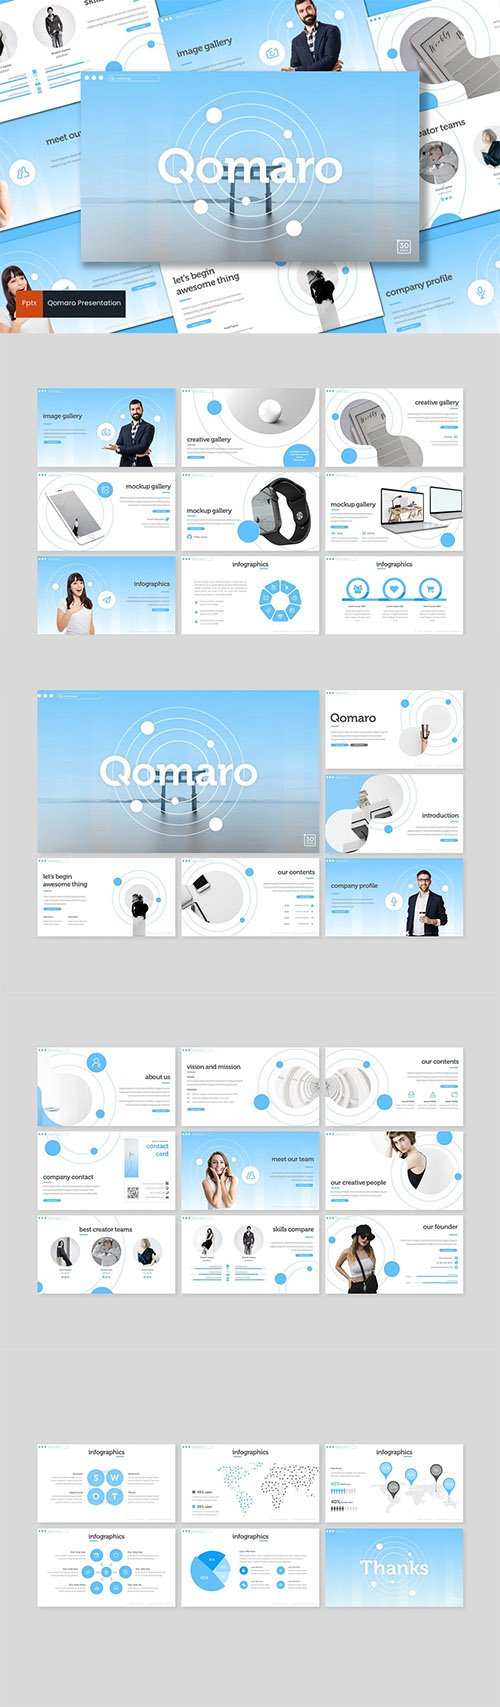 Qomaro - Powerpoint, Keynote and Google Slides Templates